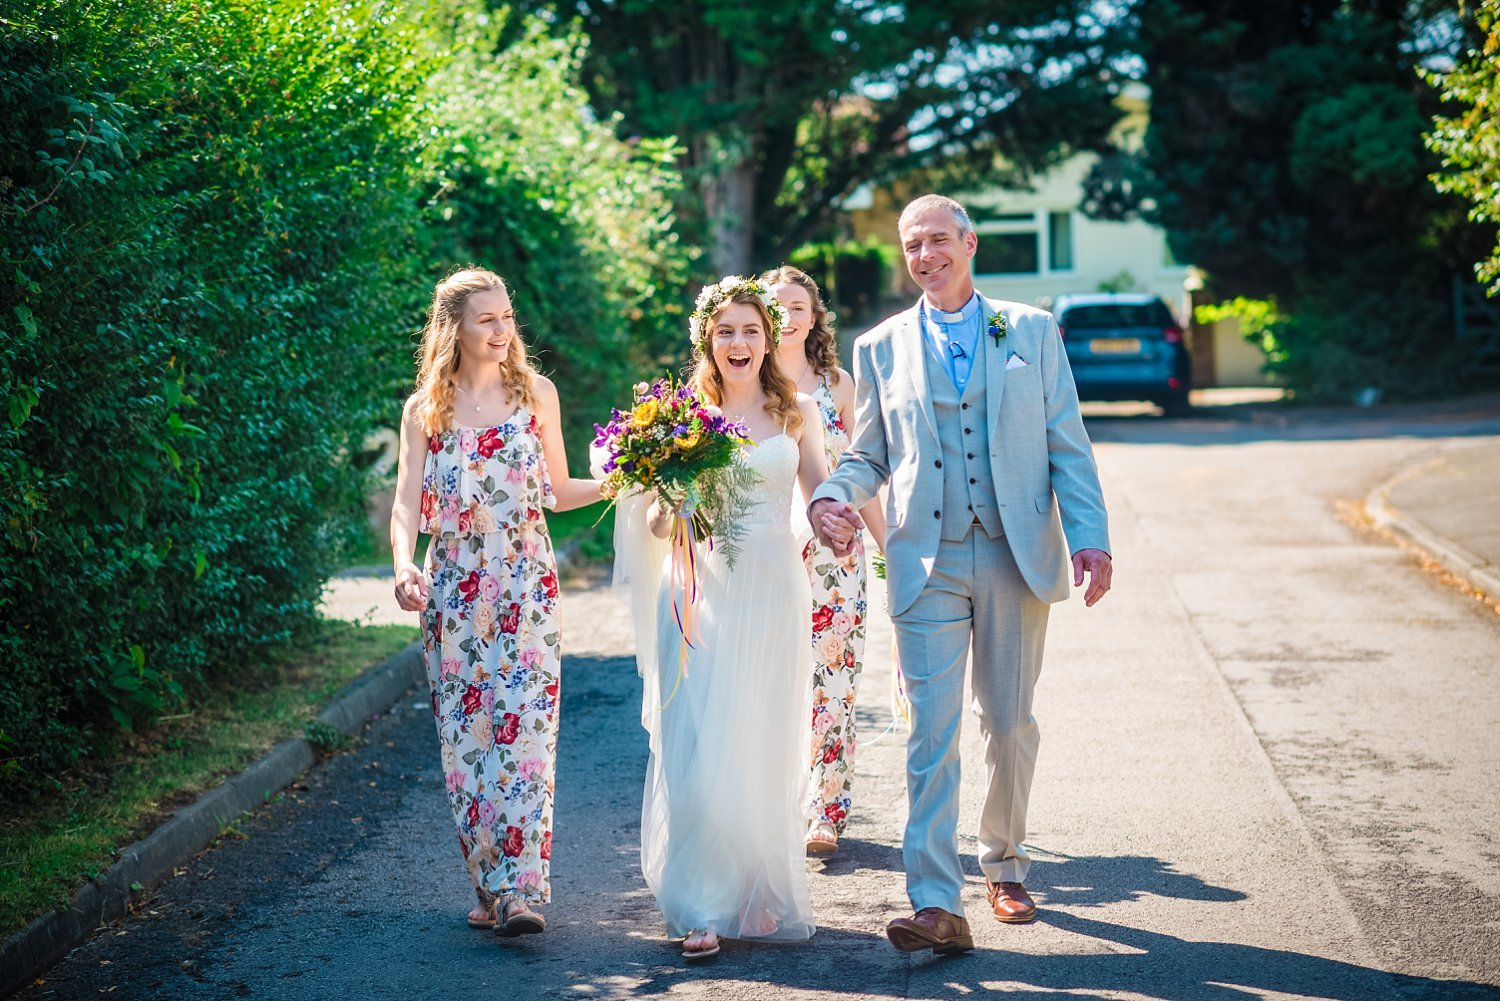 Farnham Wedding Photographer - bride is walking with her dad and sisters